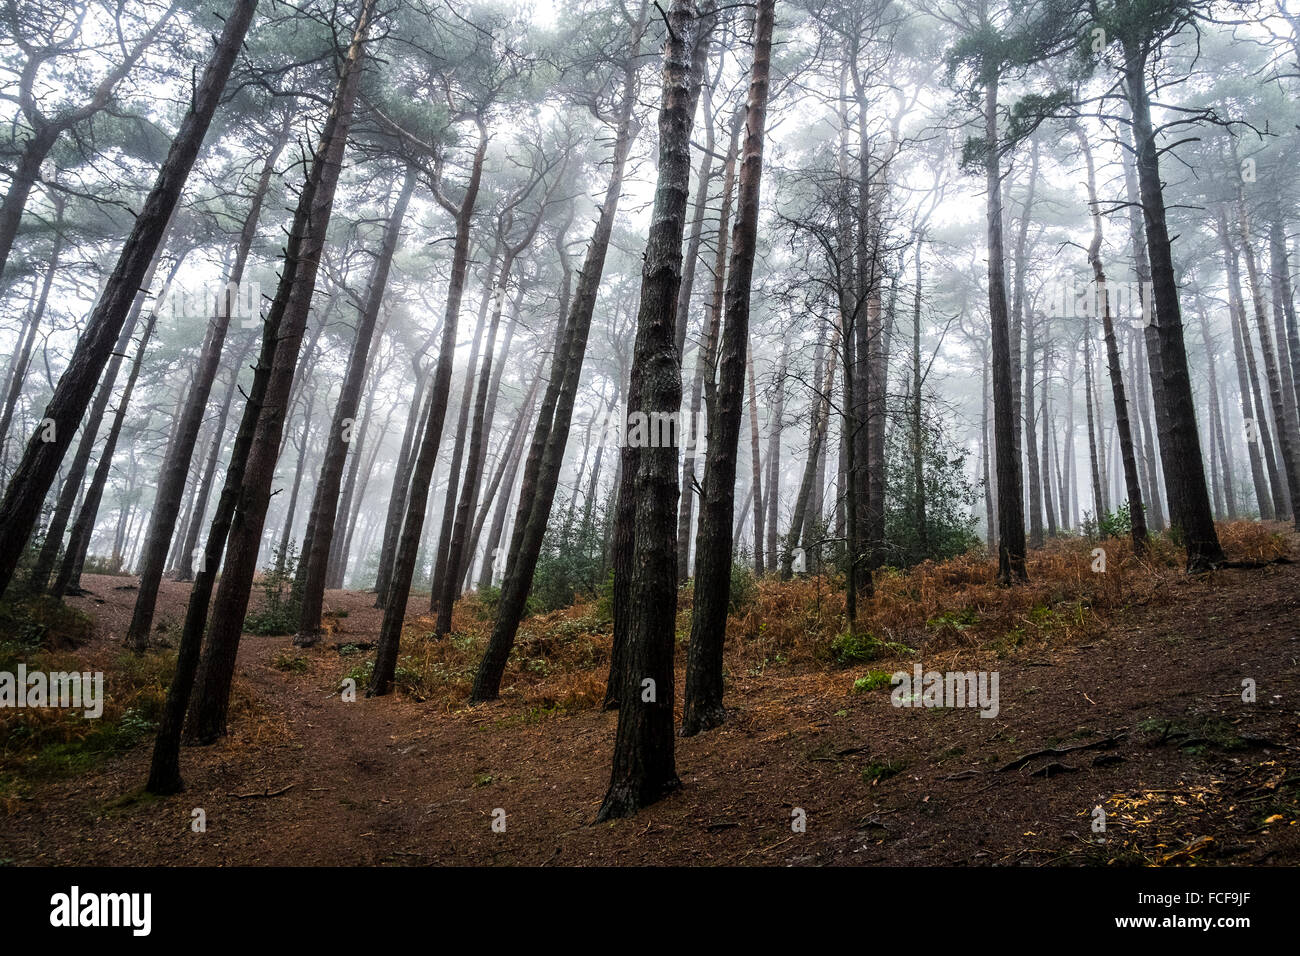 Trees in woodland on the Lickey Hills, West Midlands, UK. - Stock Image